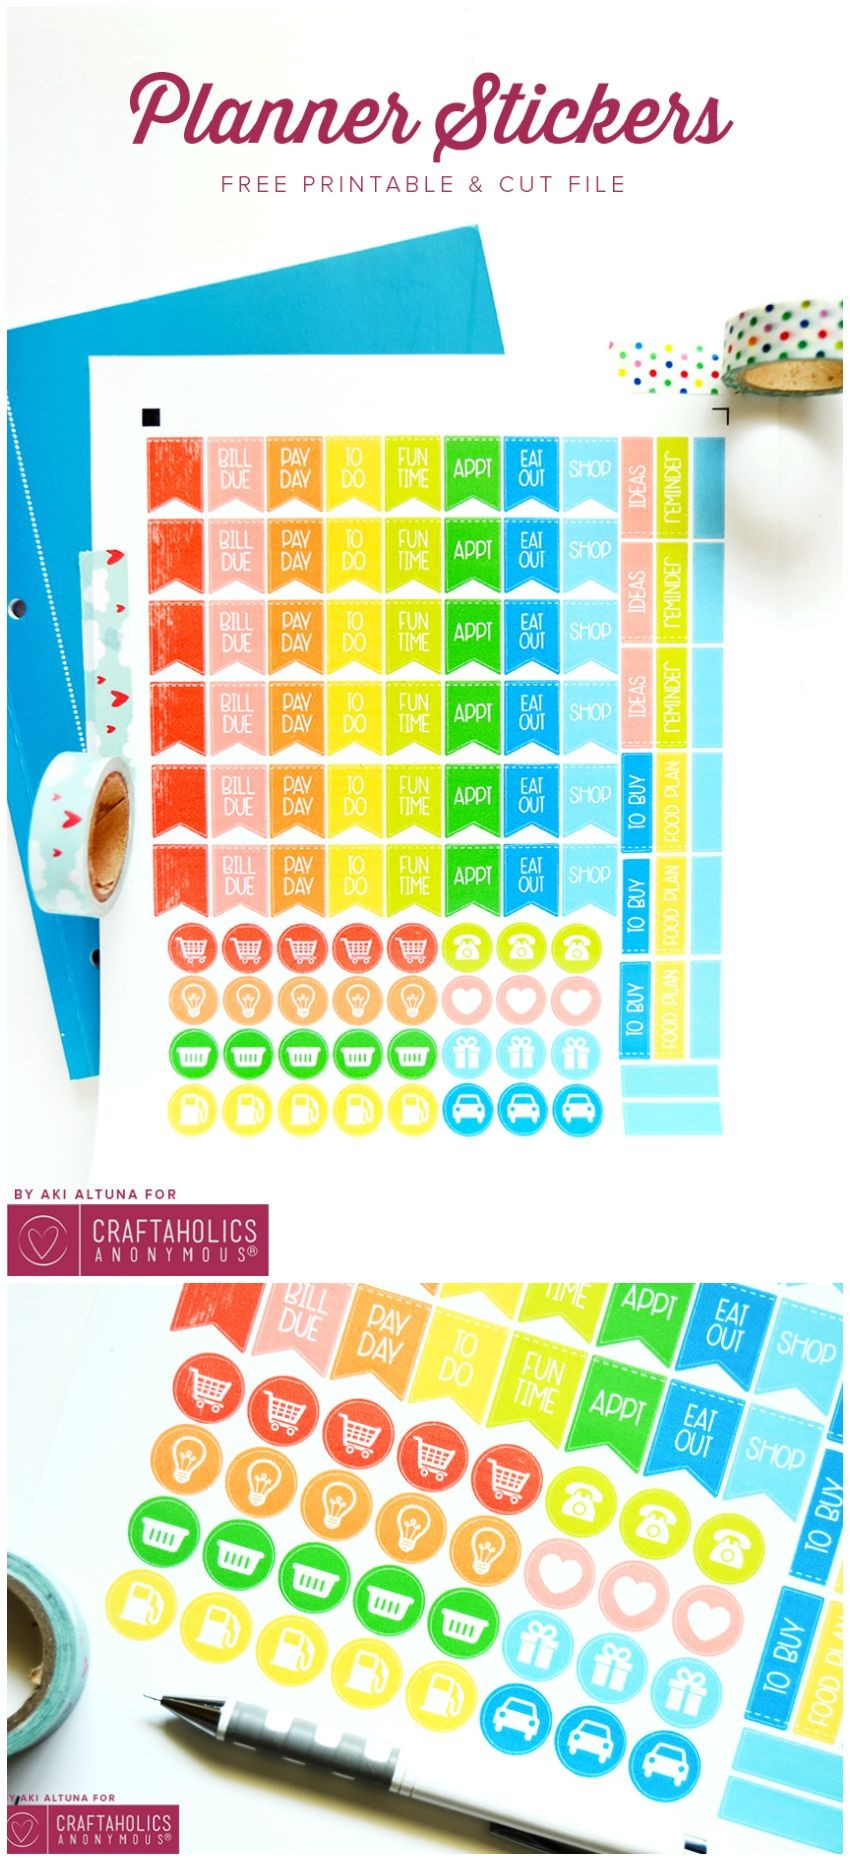 planner stickers collage